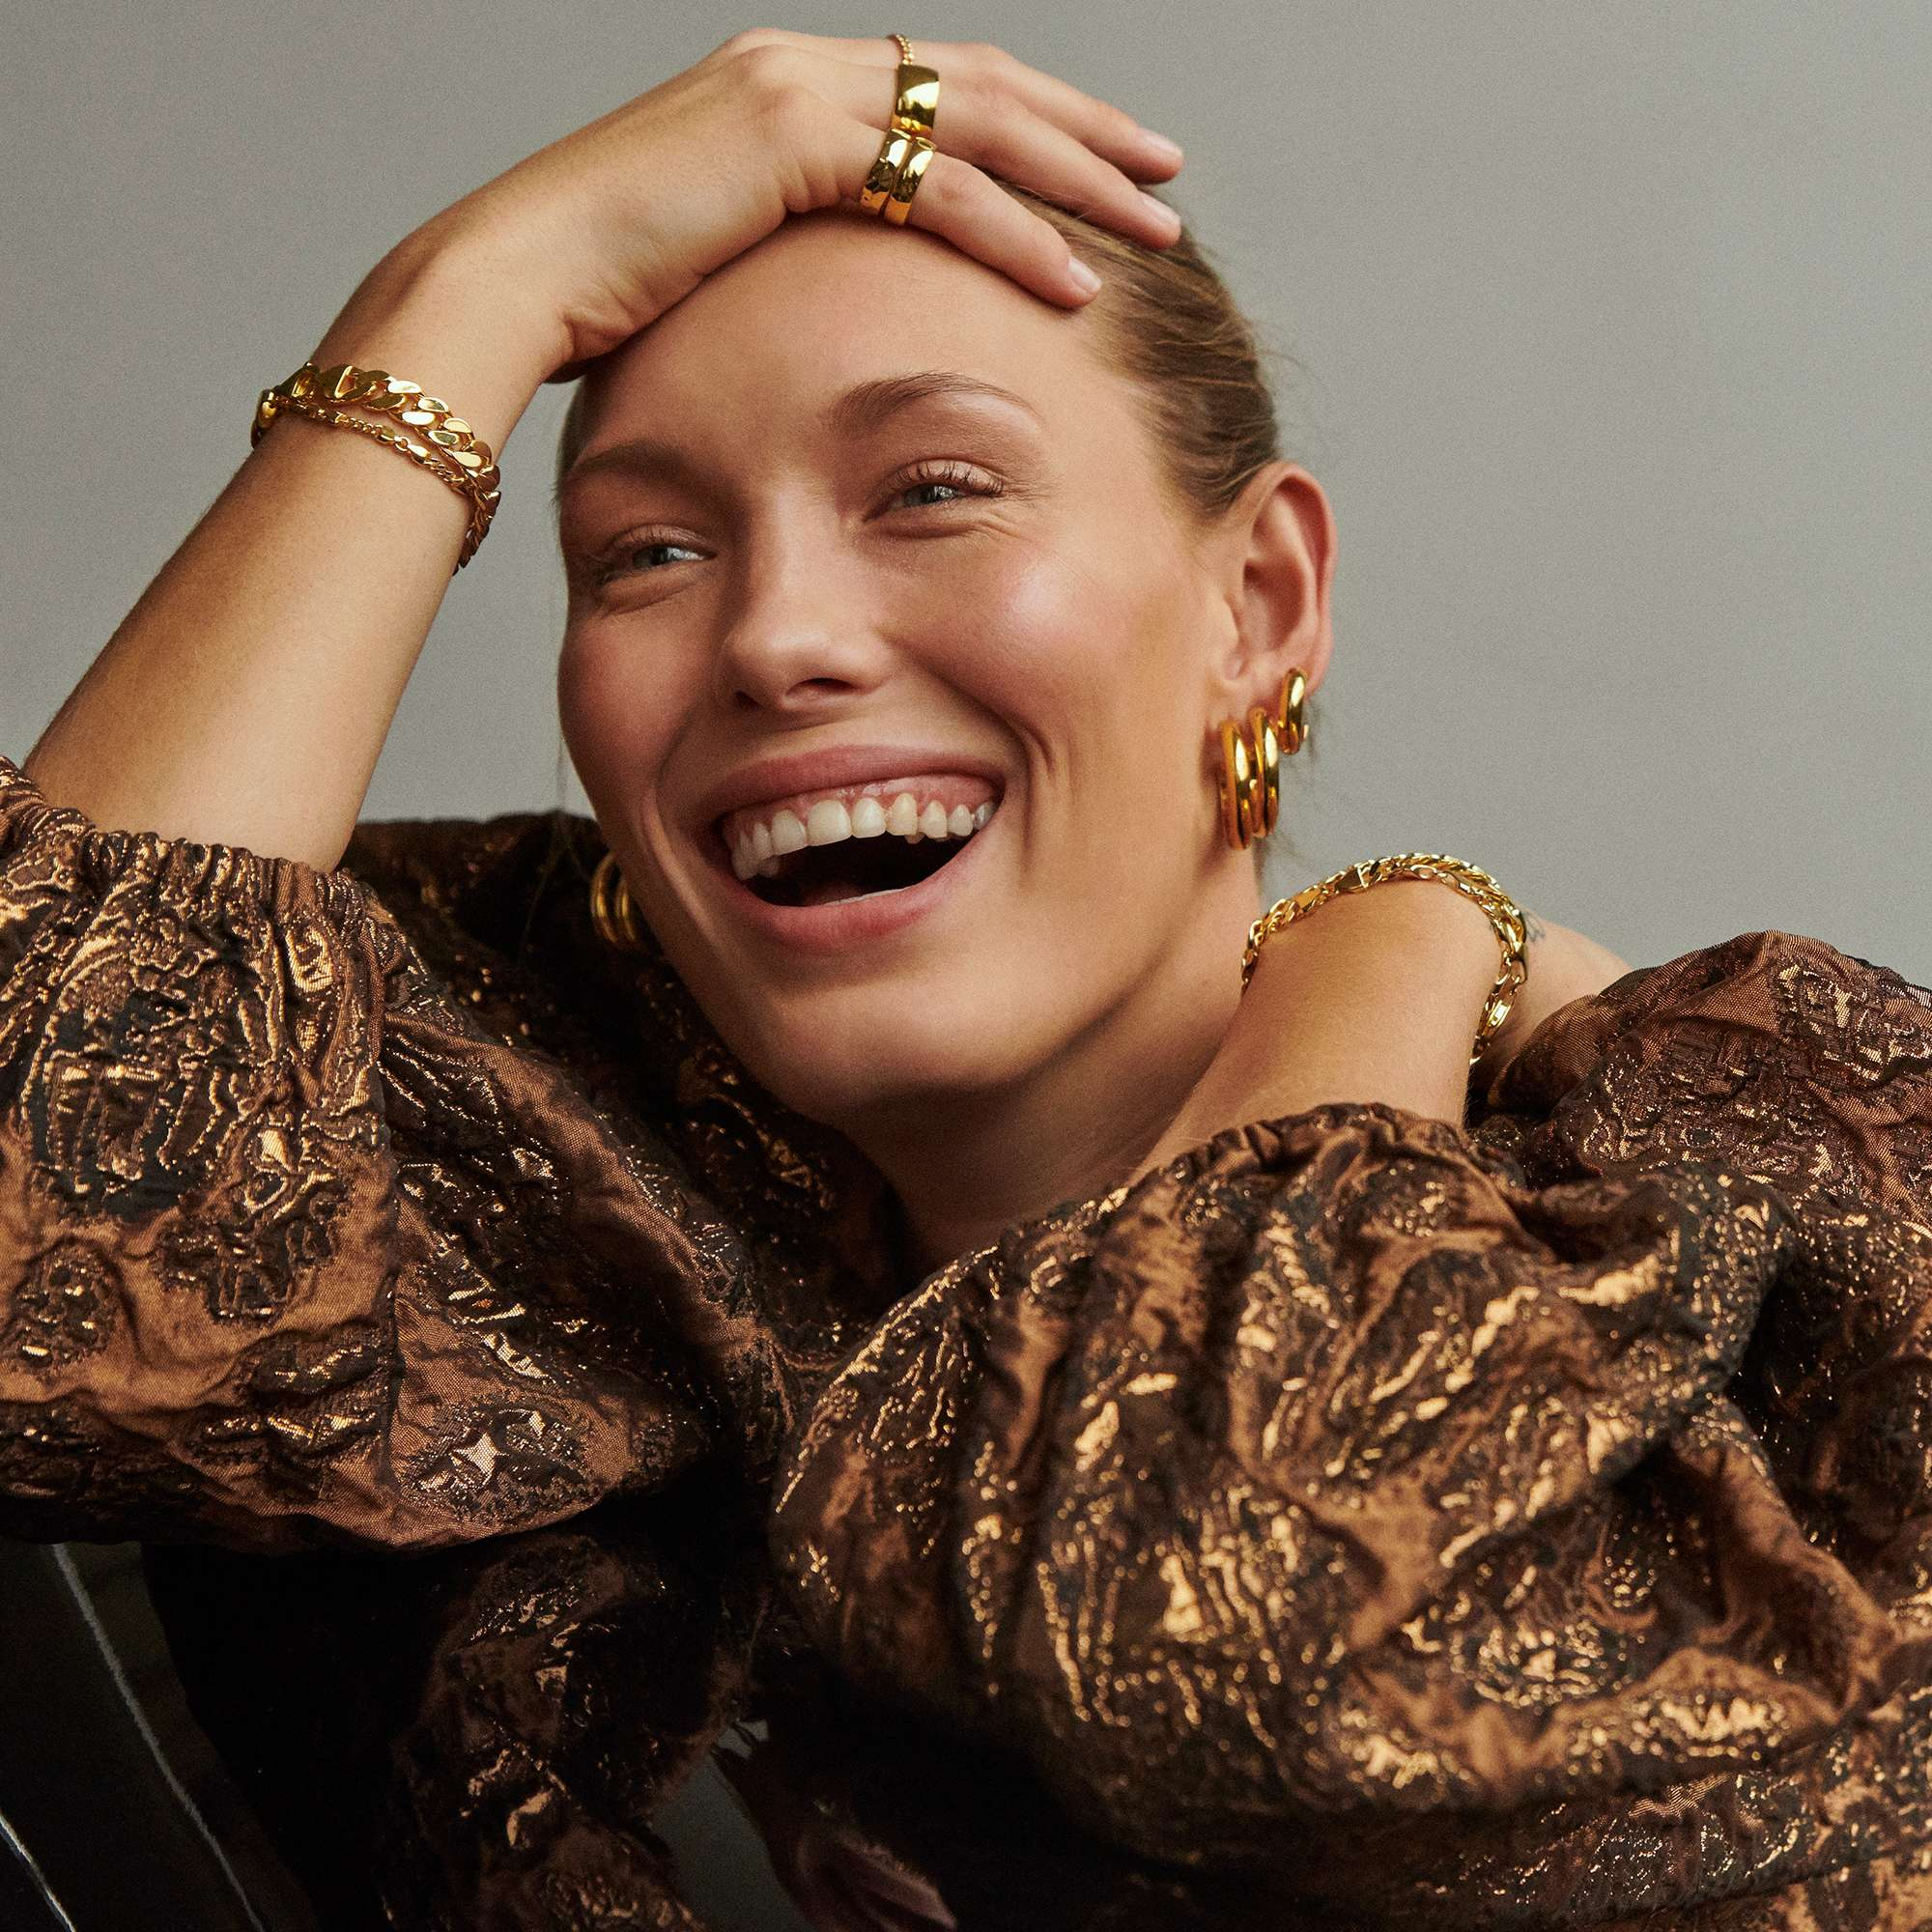 A model in a gold dress smiling and wearing multiple pieces of earrings, rings, and bracelets from Camille Brinch.